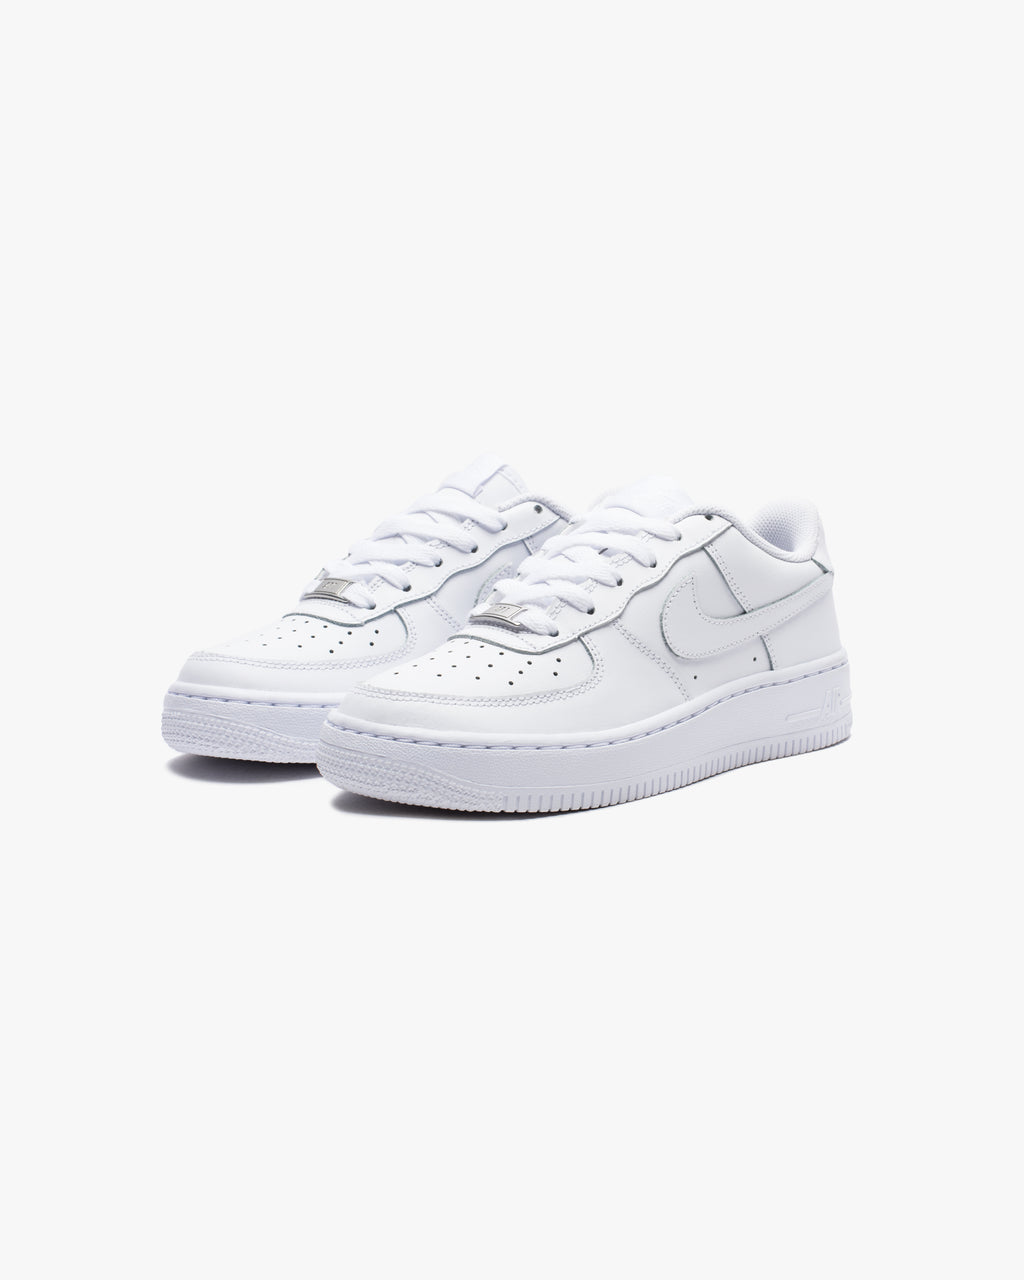 GS AIR FORCE 1 - WHITE